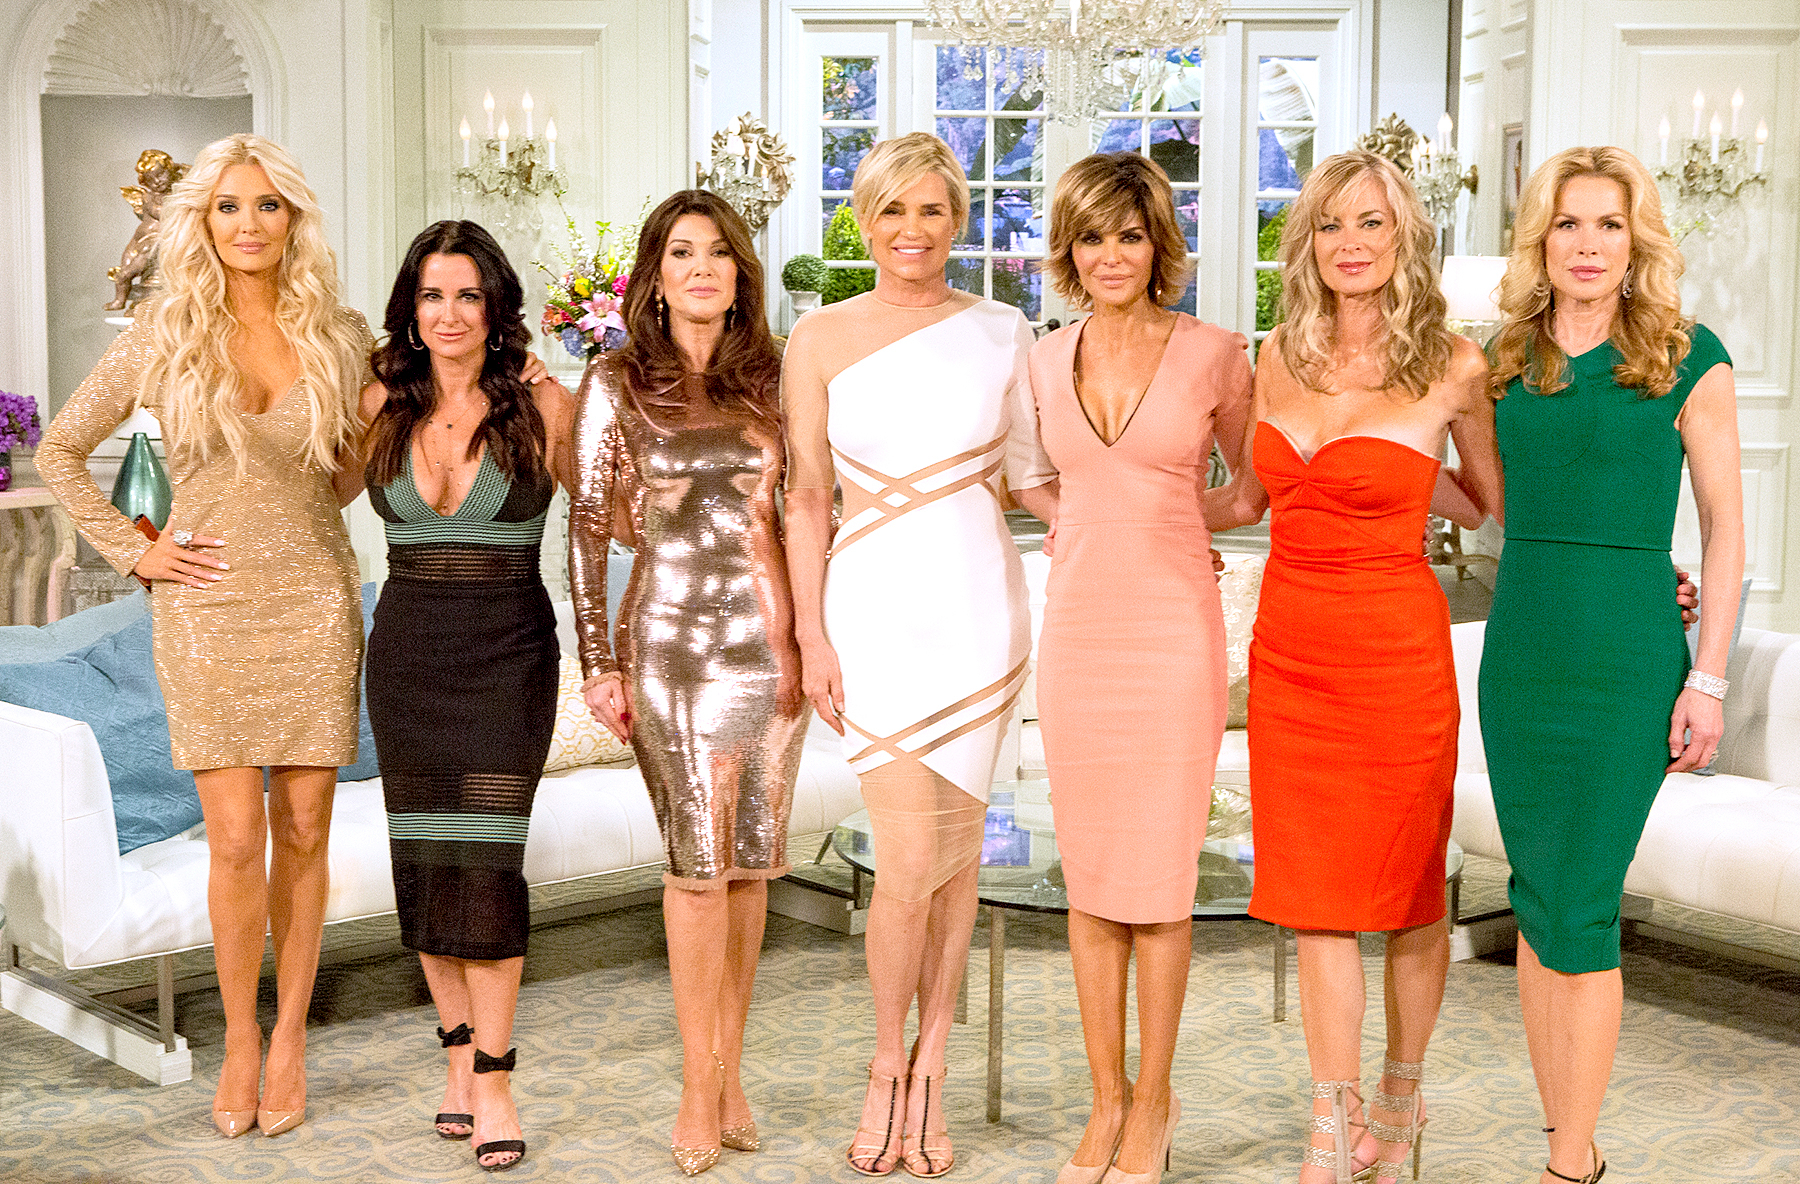 Erika Girardi, Kyle Richards, Lisa Vanderpump, Yolanda H. Foster, Lisa Rinna, Eileen Davidson, and Kathryn Edwards at the The Real Housewives Of Beverly Hills Reunion.